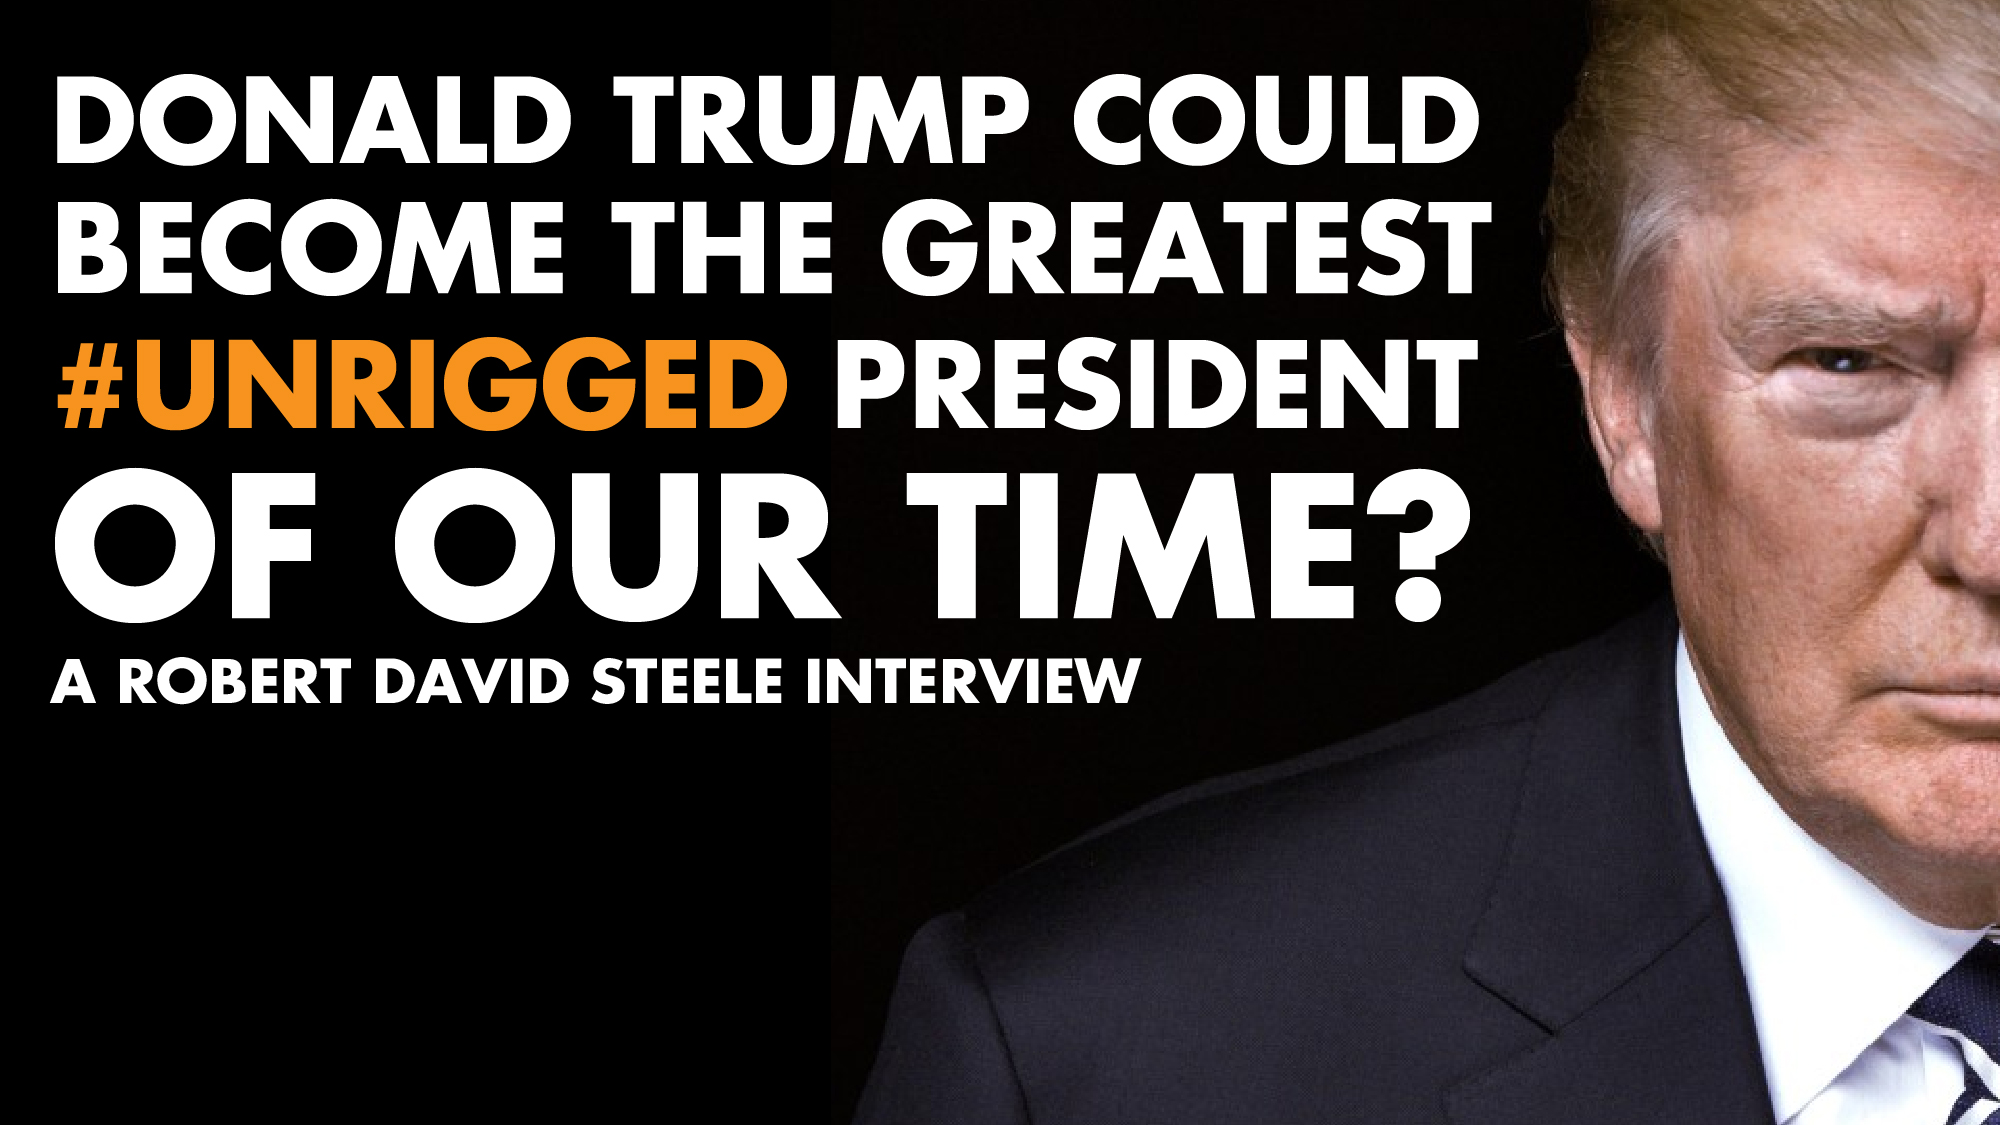 Donald Trump Could Become The Greatest #unrigged President Of Our Time? – Robert David Steele Interview